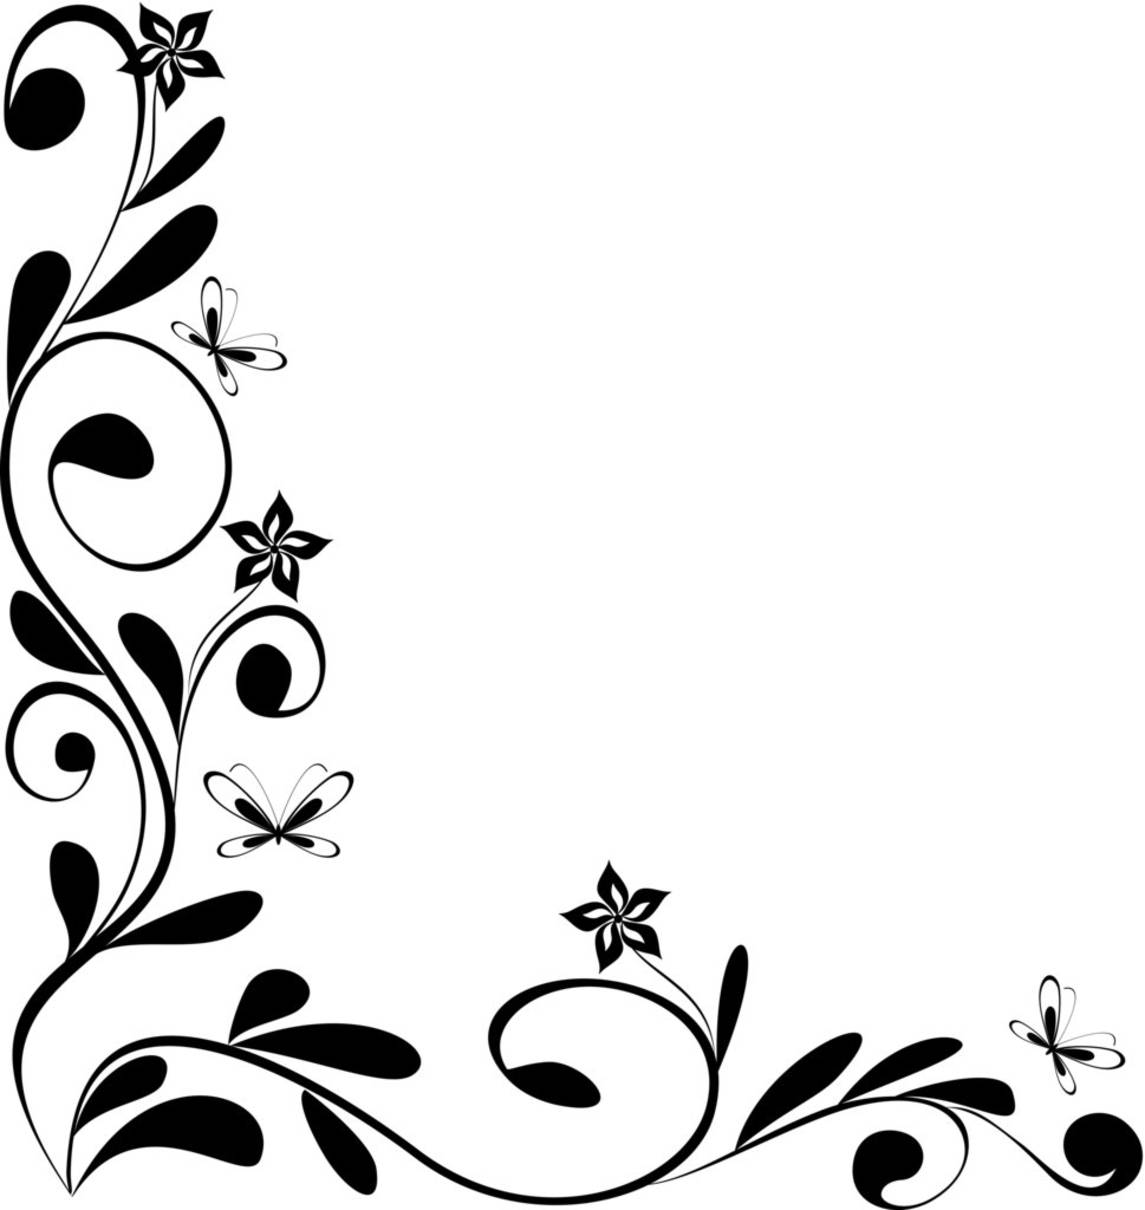 Black and White Floral Border Design